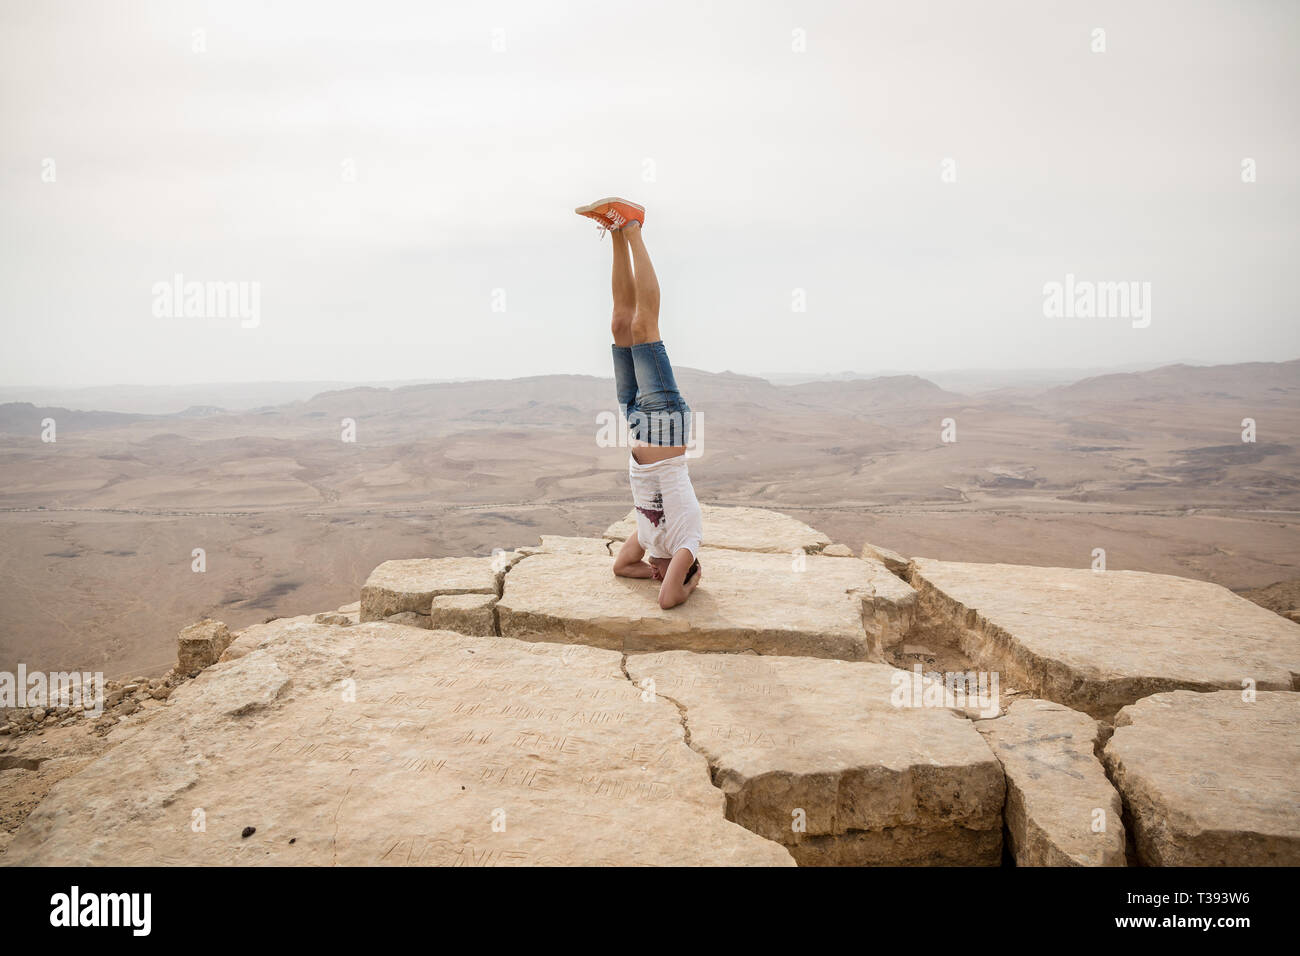 Mitzpe Ramon, Israel - 22 november, 2016: Man standing on his dead on the edge of Ramon crater cliff at  Negev desert, Israel Stock Photo